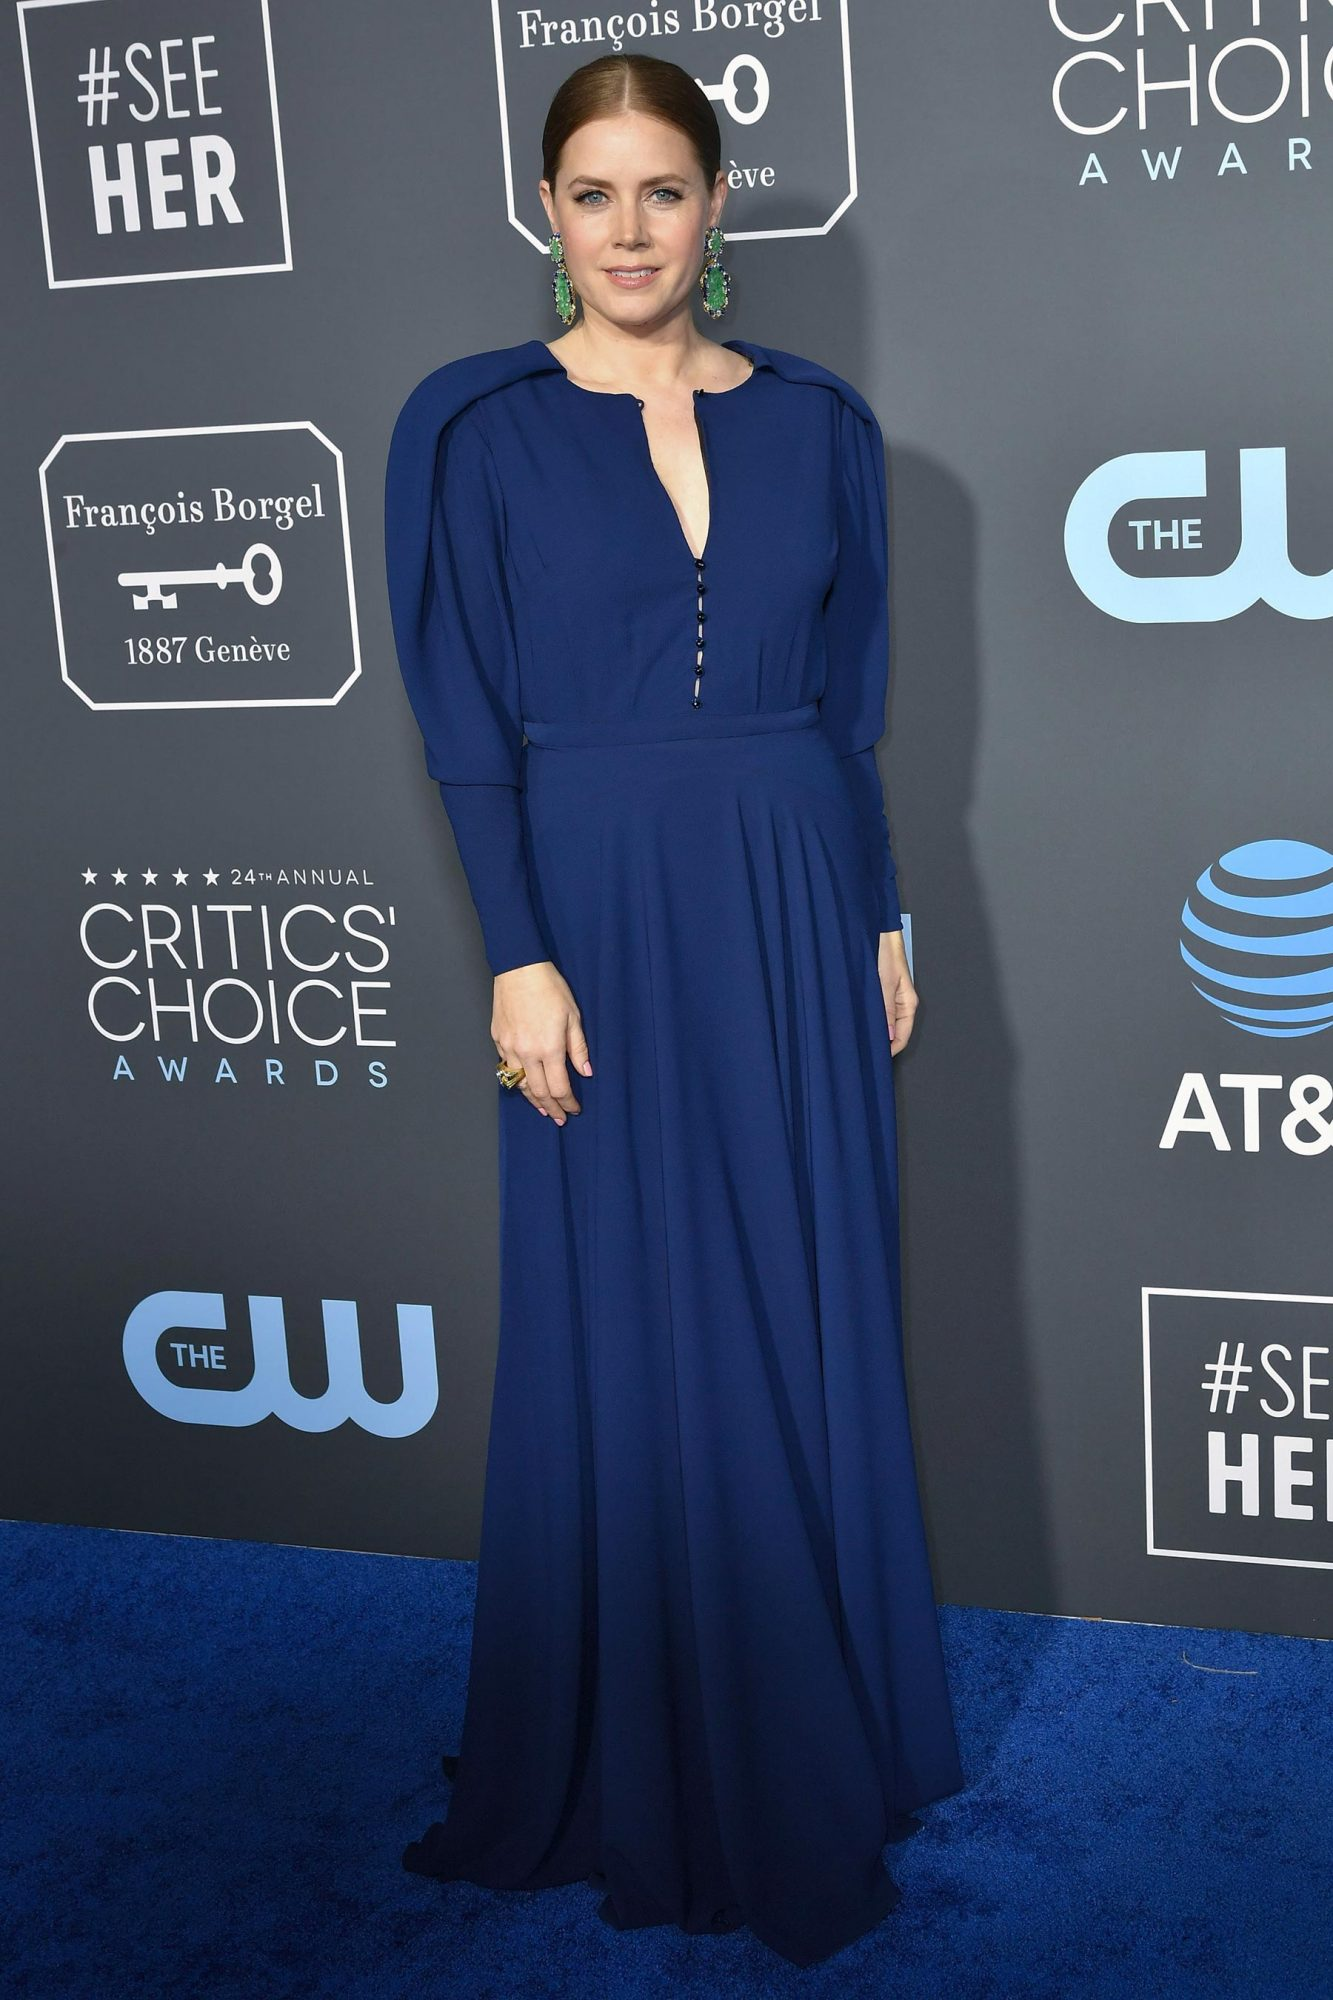 24th Annual Critics' Choice Awards, Arrivals, Barker Hanger, Los Angeles, USA - 13 Jan 2019